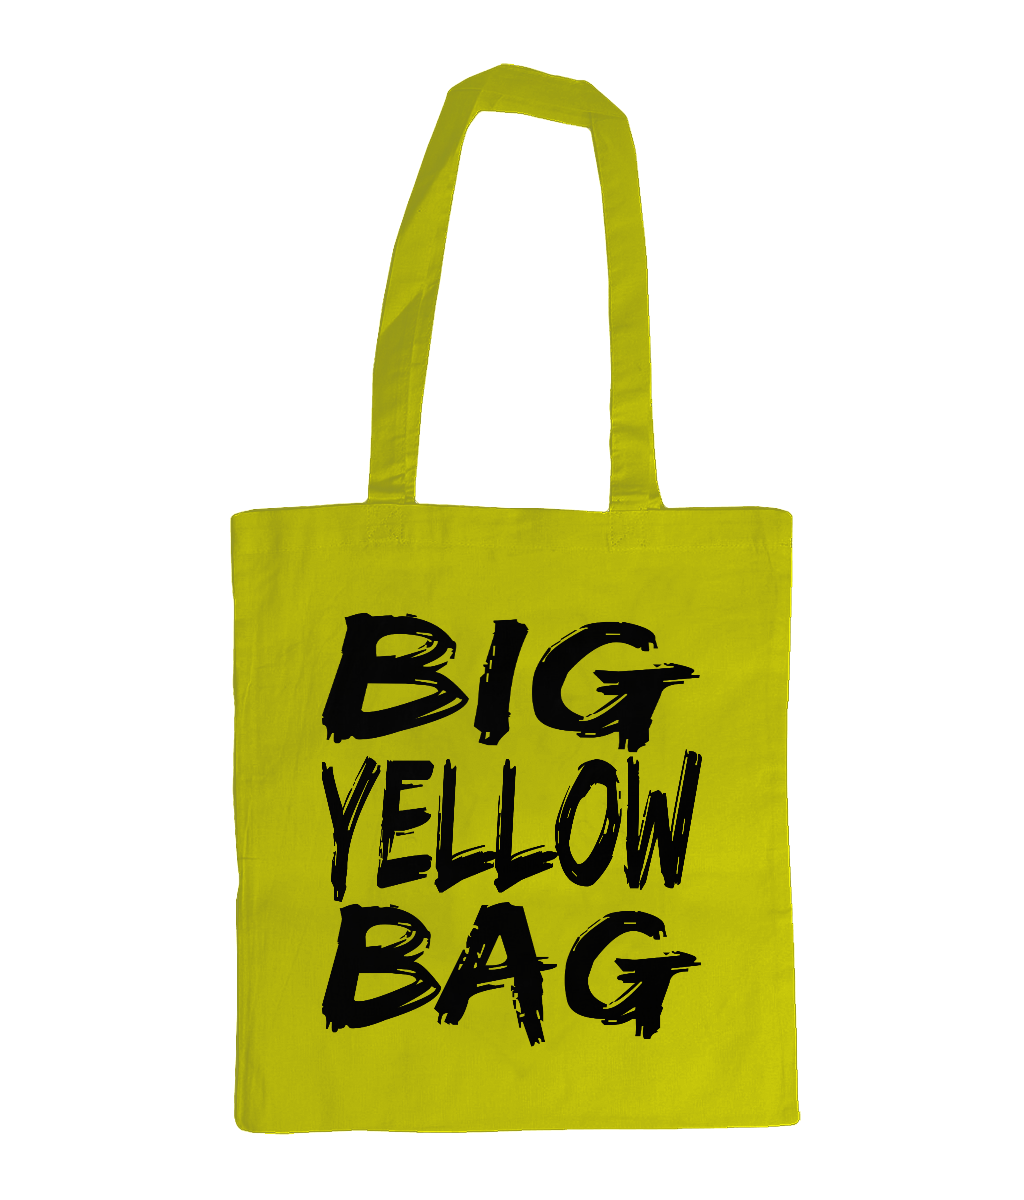 Big Yellow Bag - tote bag